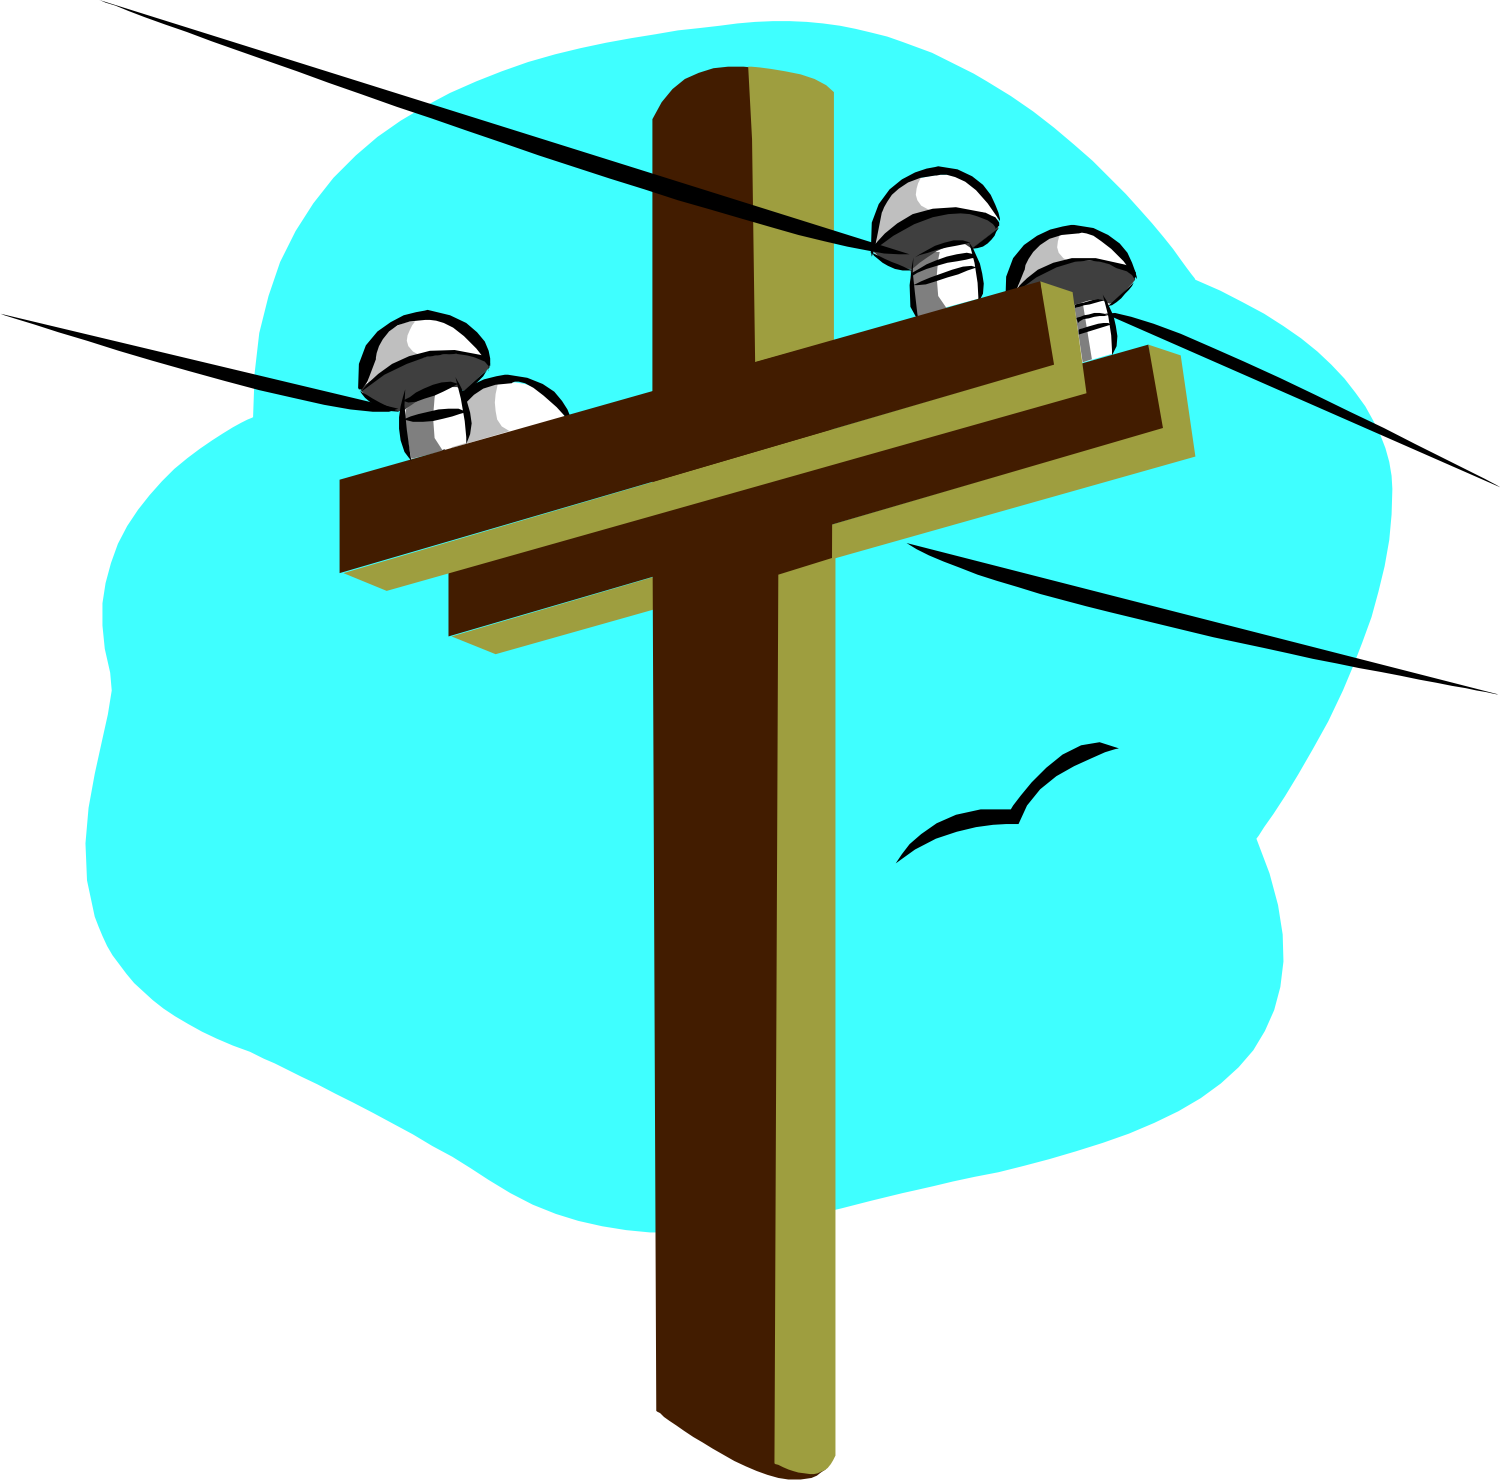 Telephone Pole 114534 Png